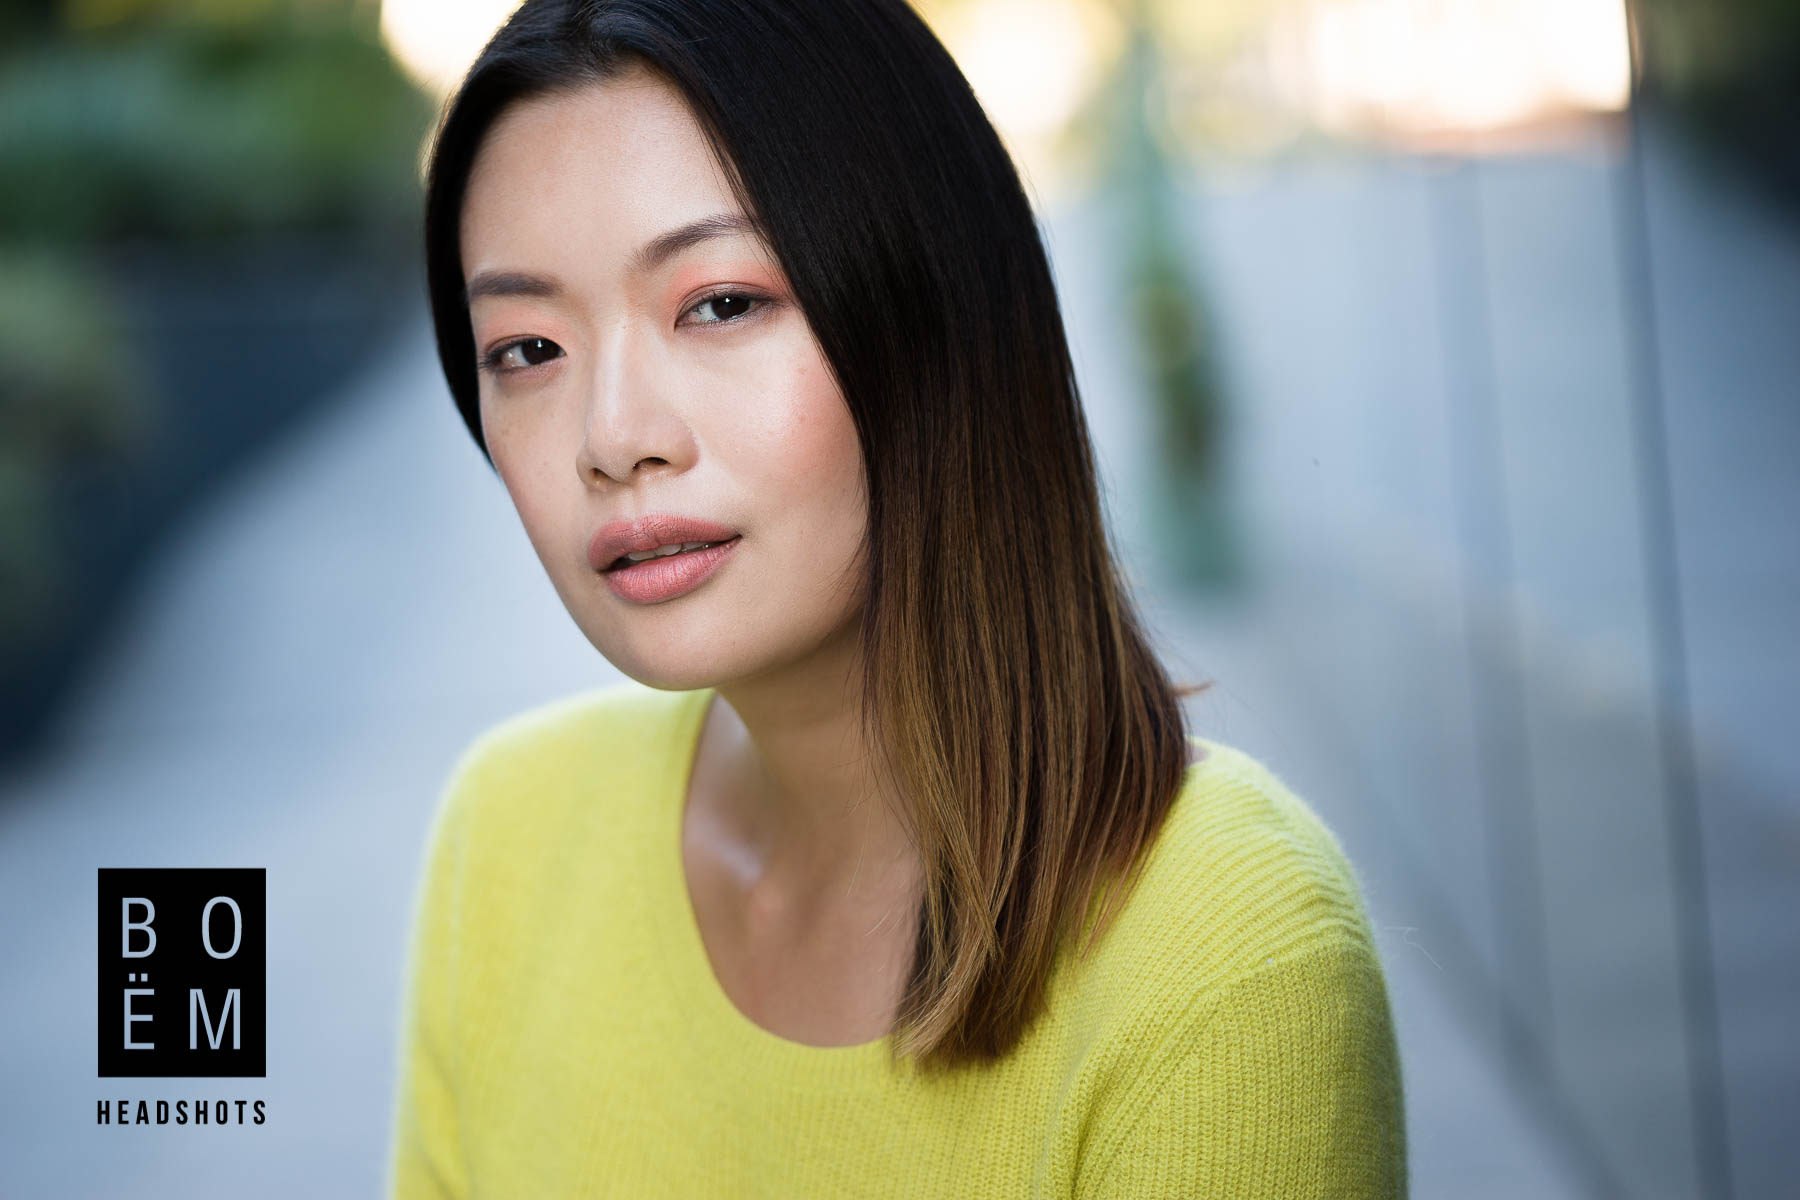 A quick look at my professional headshot session with Crystal in Melbourne today. We walked the town and took some amazing shots in a few of the best lighting spots in Melbourne. More to come.